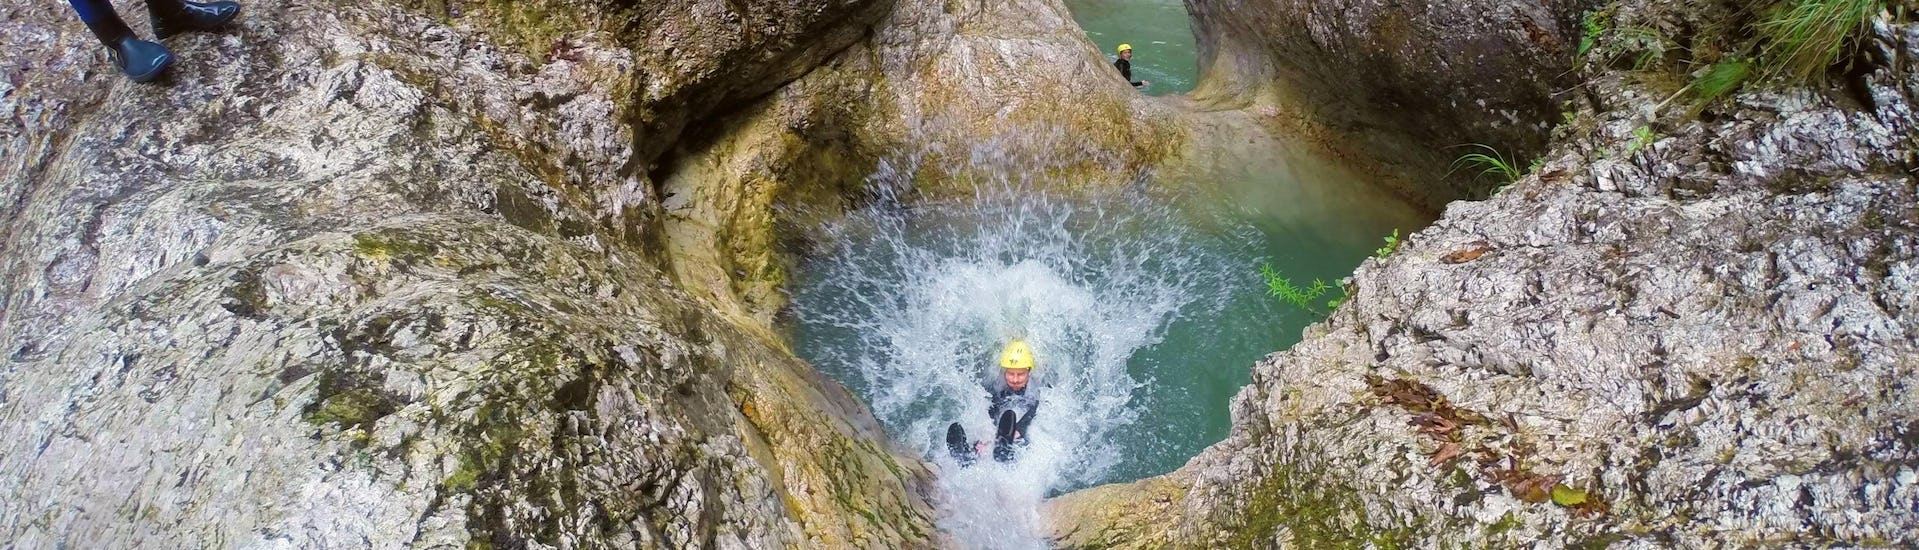 Canyoning in the Kozjak Gorge for Adventurers